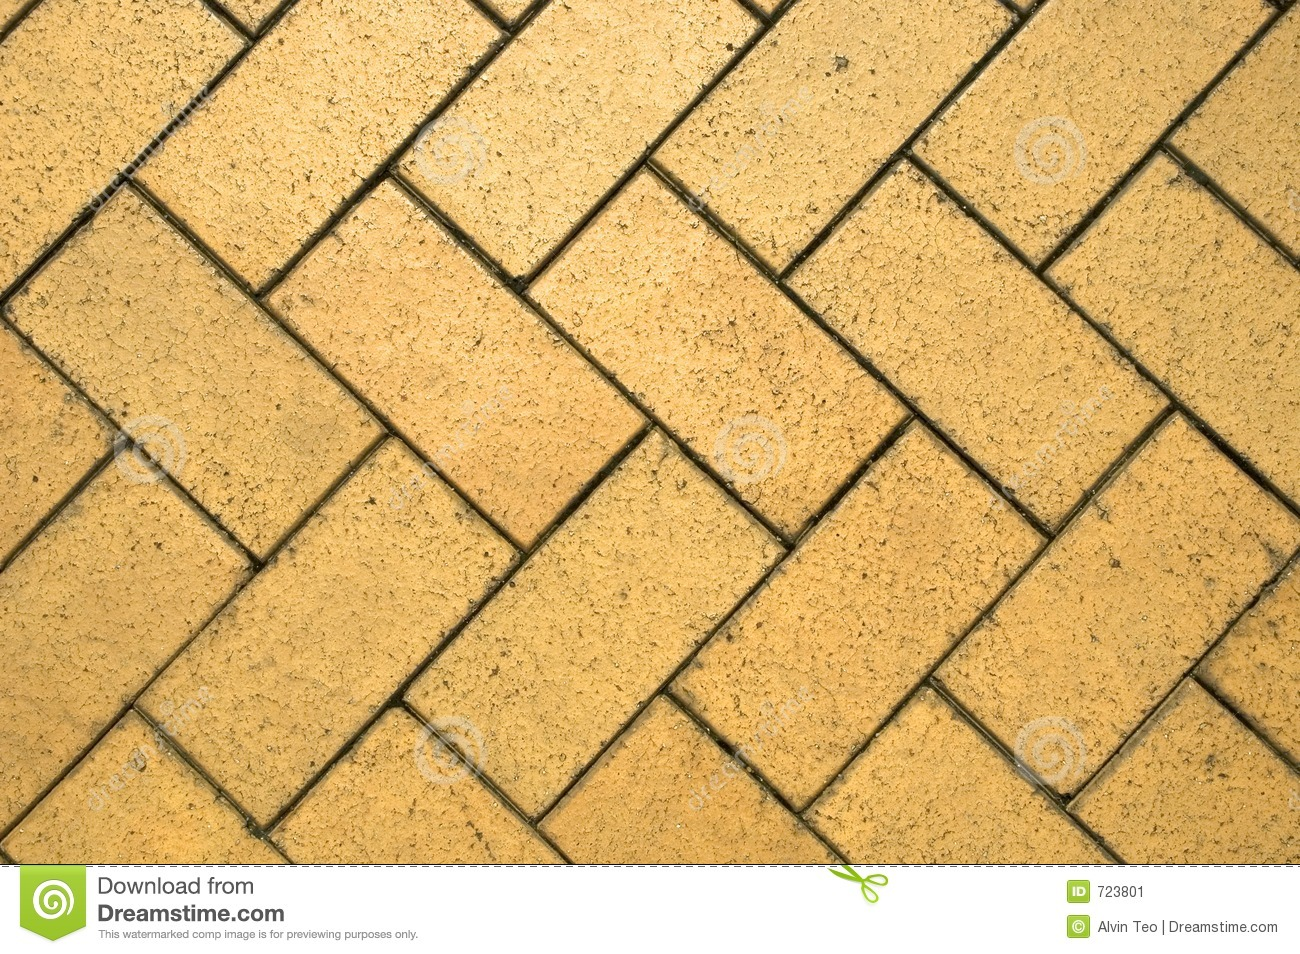 Brick flooring stock image image of flooring texture for Brick flooring prices